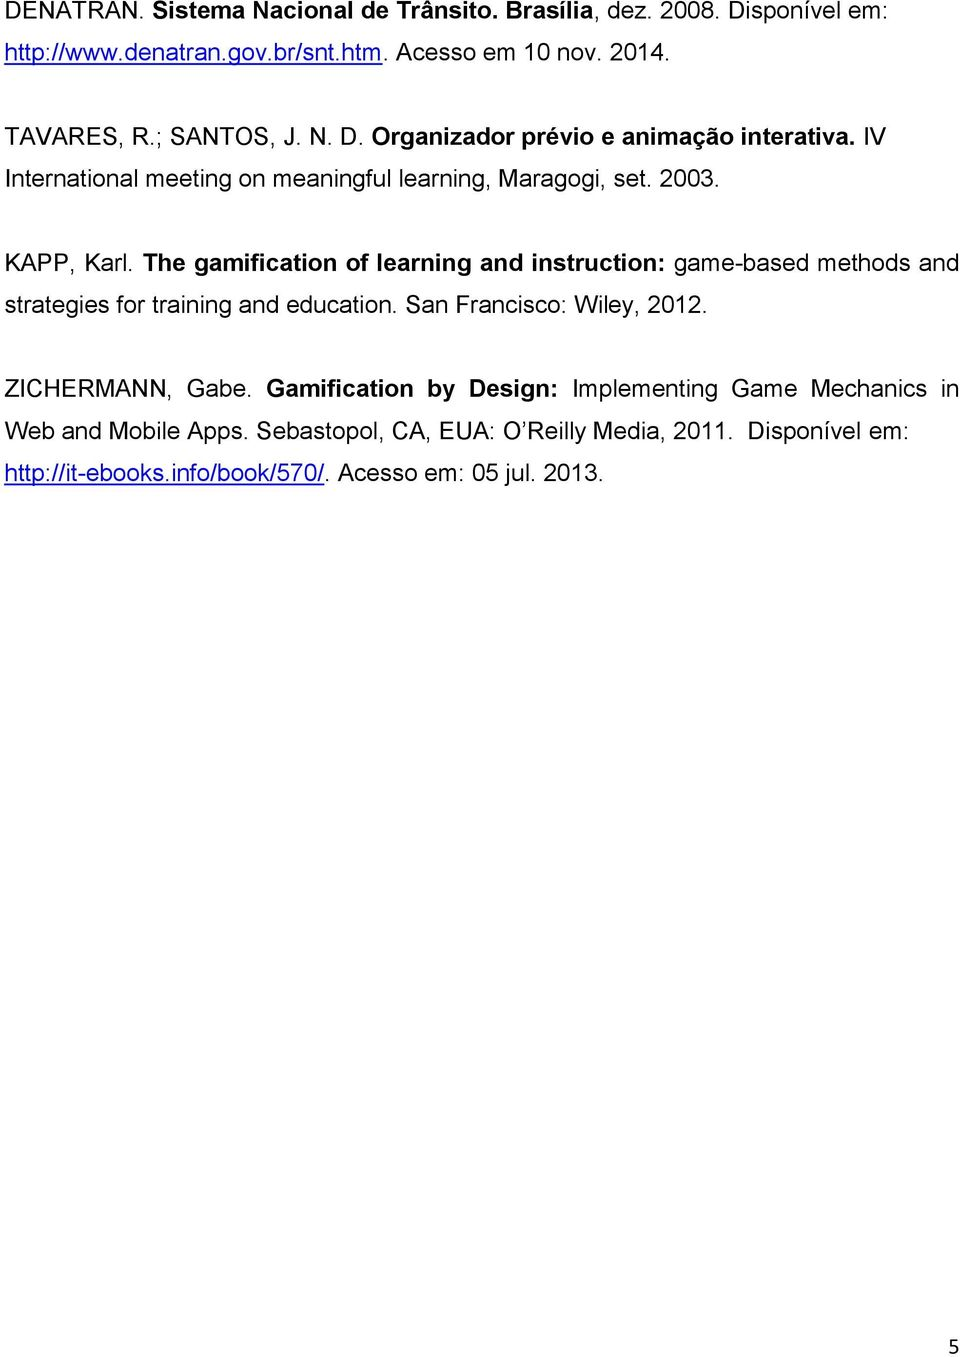 The gamification of learning and instruction: game-based methods and strategies for training and education. San Francisco: Wiley, 2012. ZICHERMANN, Gabe.